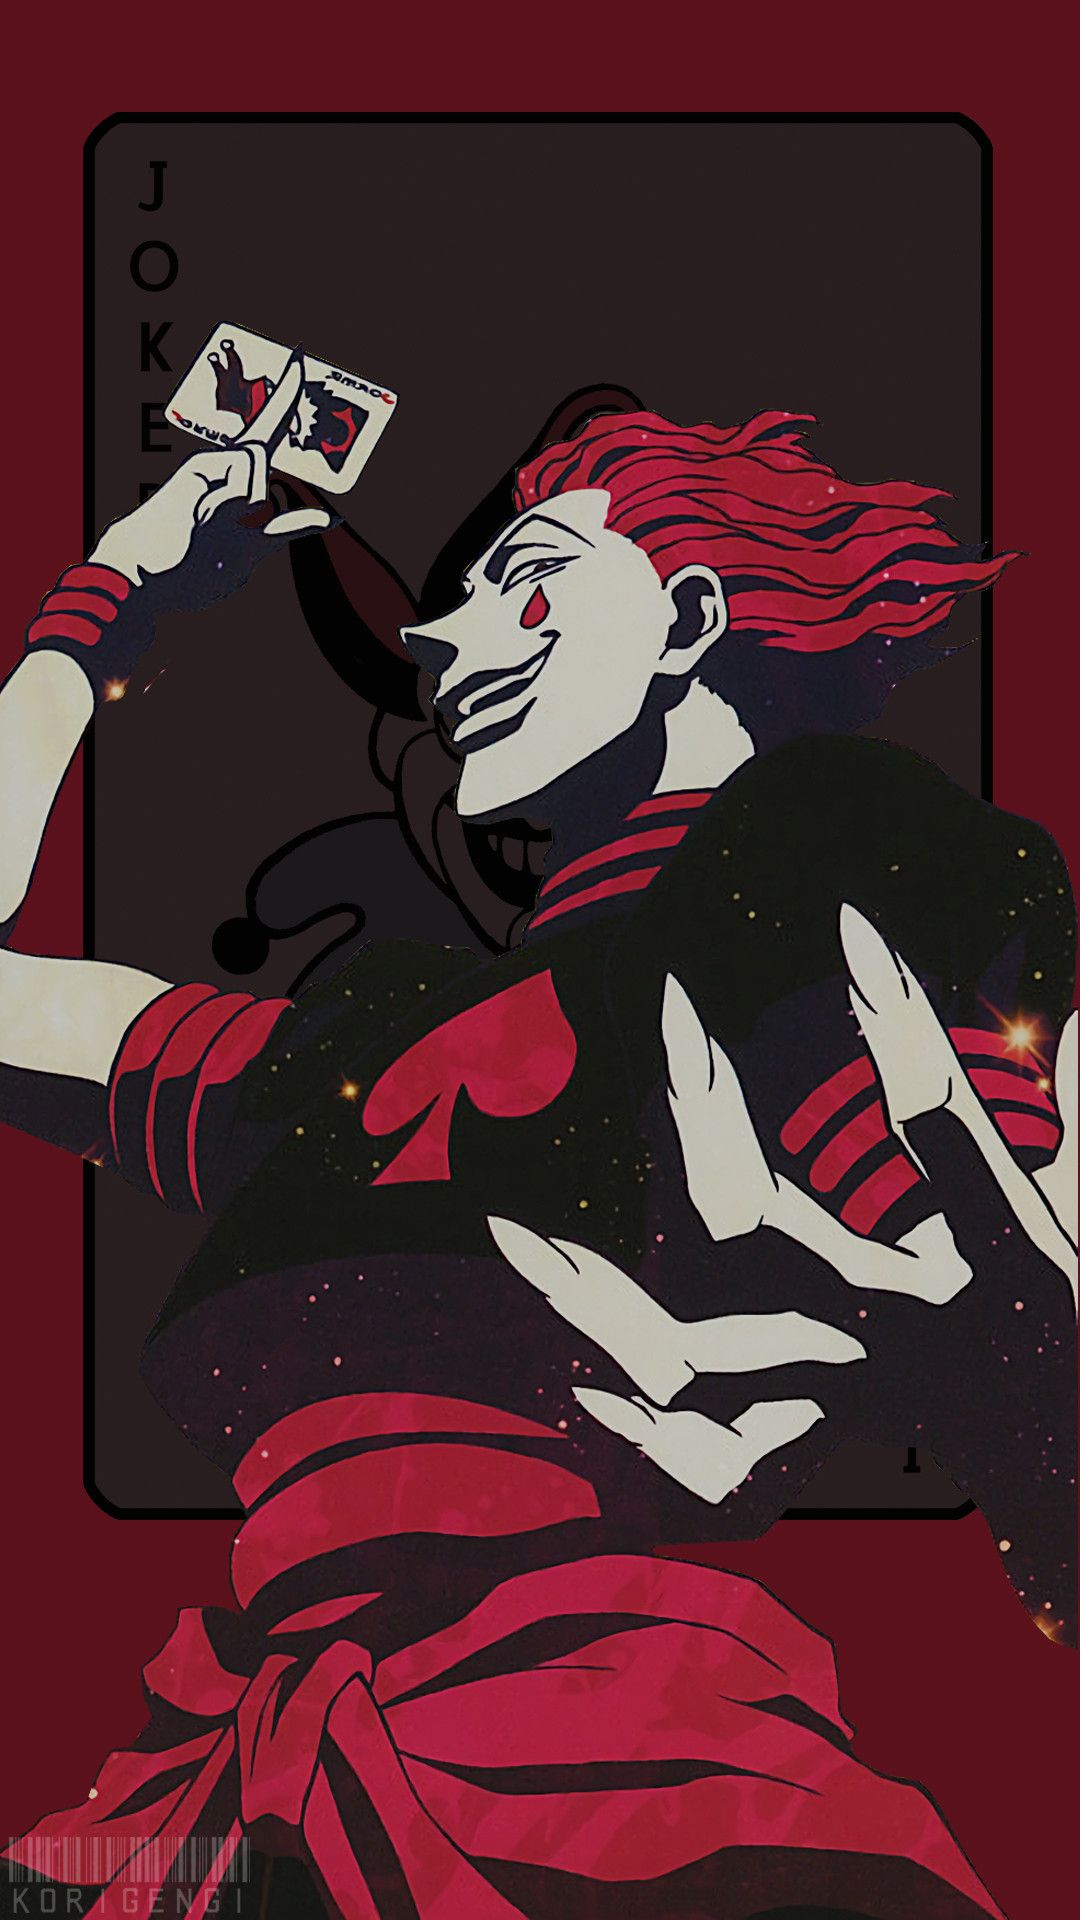 1080x1920 Hisoka Korigengi Wallpaper Anime Iphonehunter X